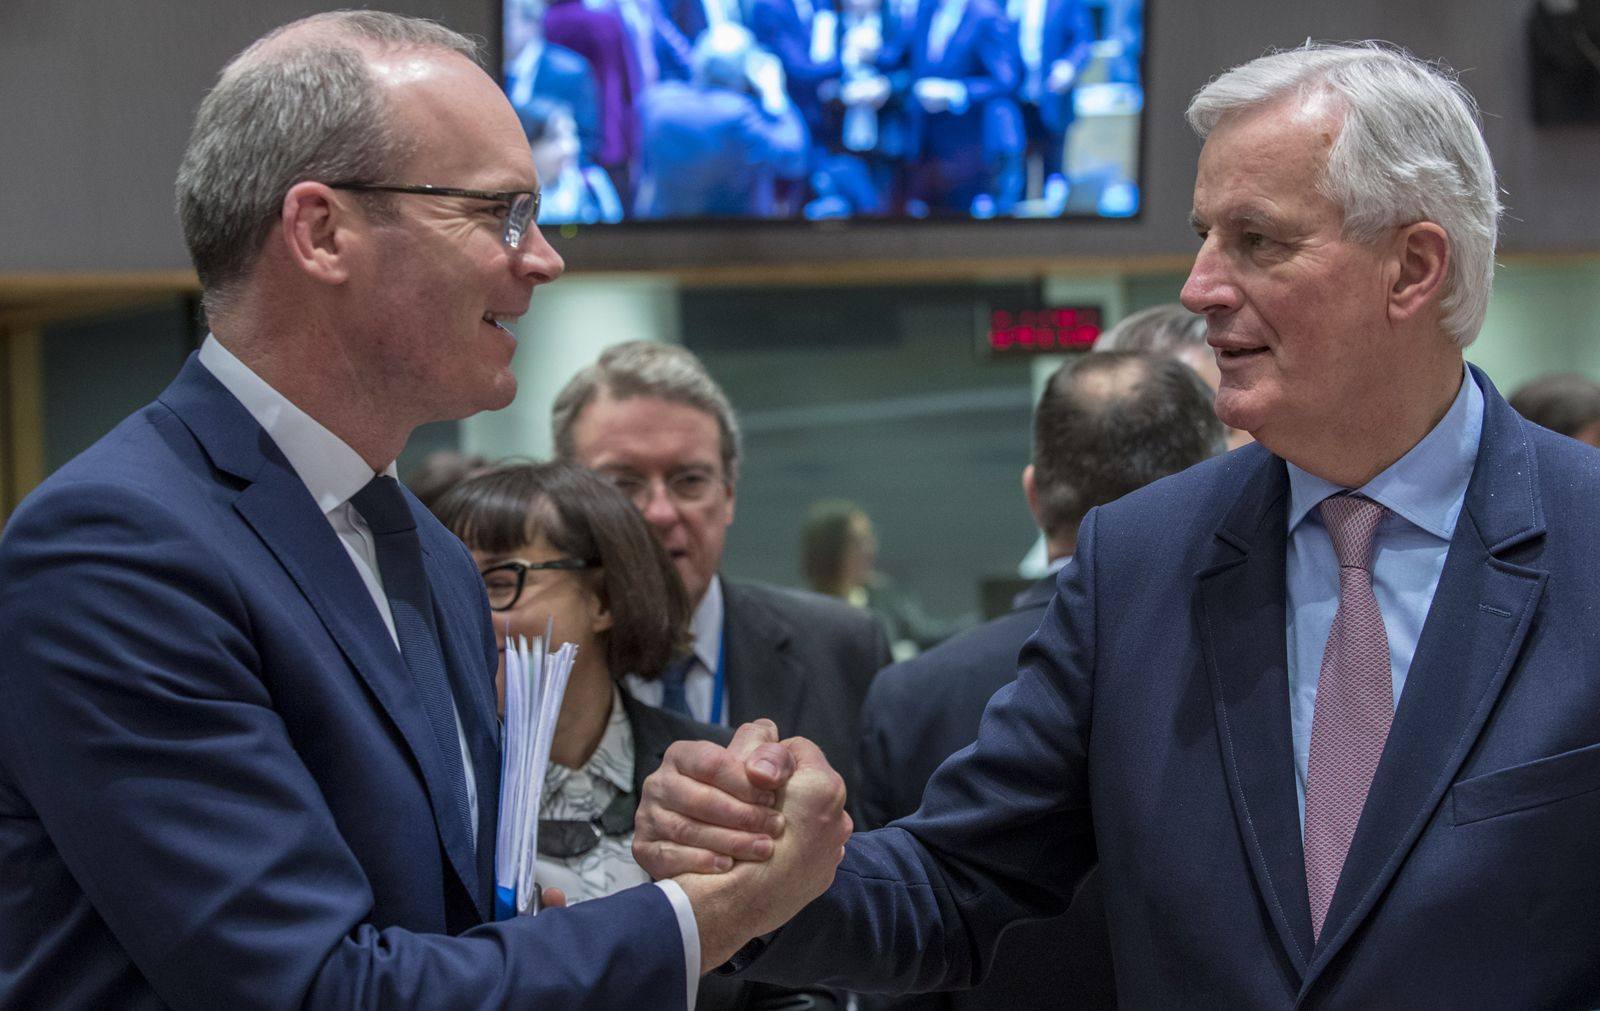 Simon Coveney (Minister of Foreign Affairs of Ireland) and Michel Barnier (Chief EU Negotiator for the Brexit). 27th February 2018. © EU Council.